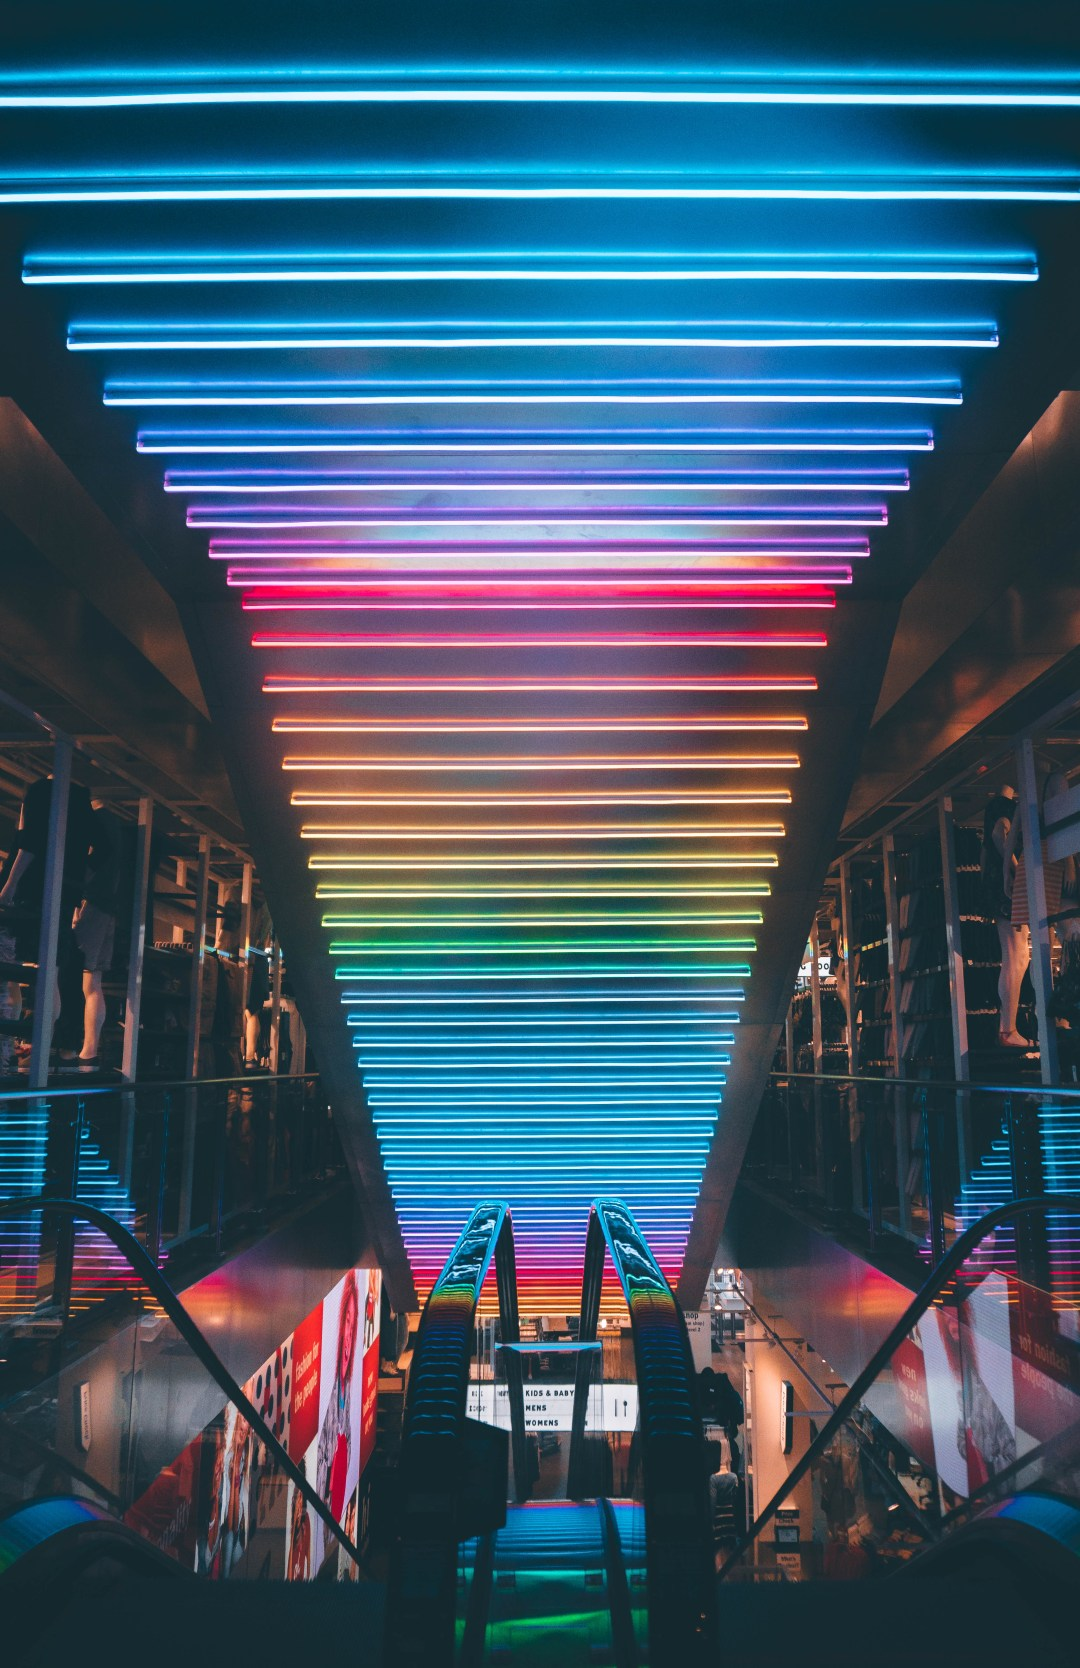 Office or a small office building, every structure needs to be designed well. Neon Light Pictures   Download Free Images on Unsplash